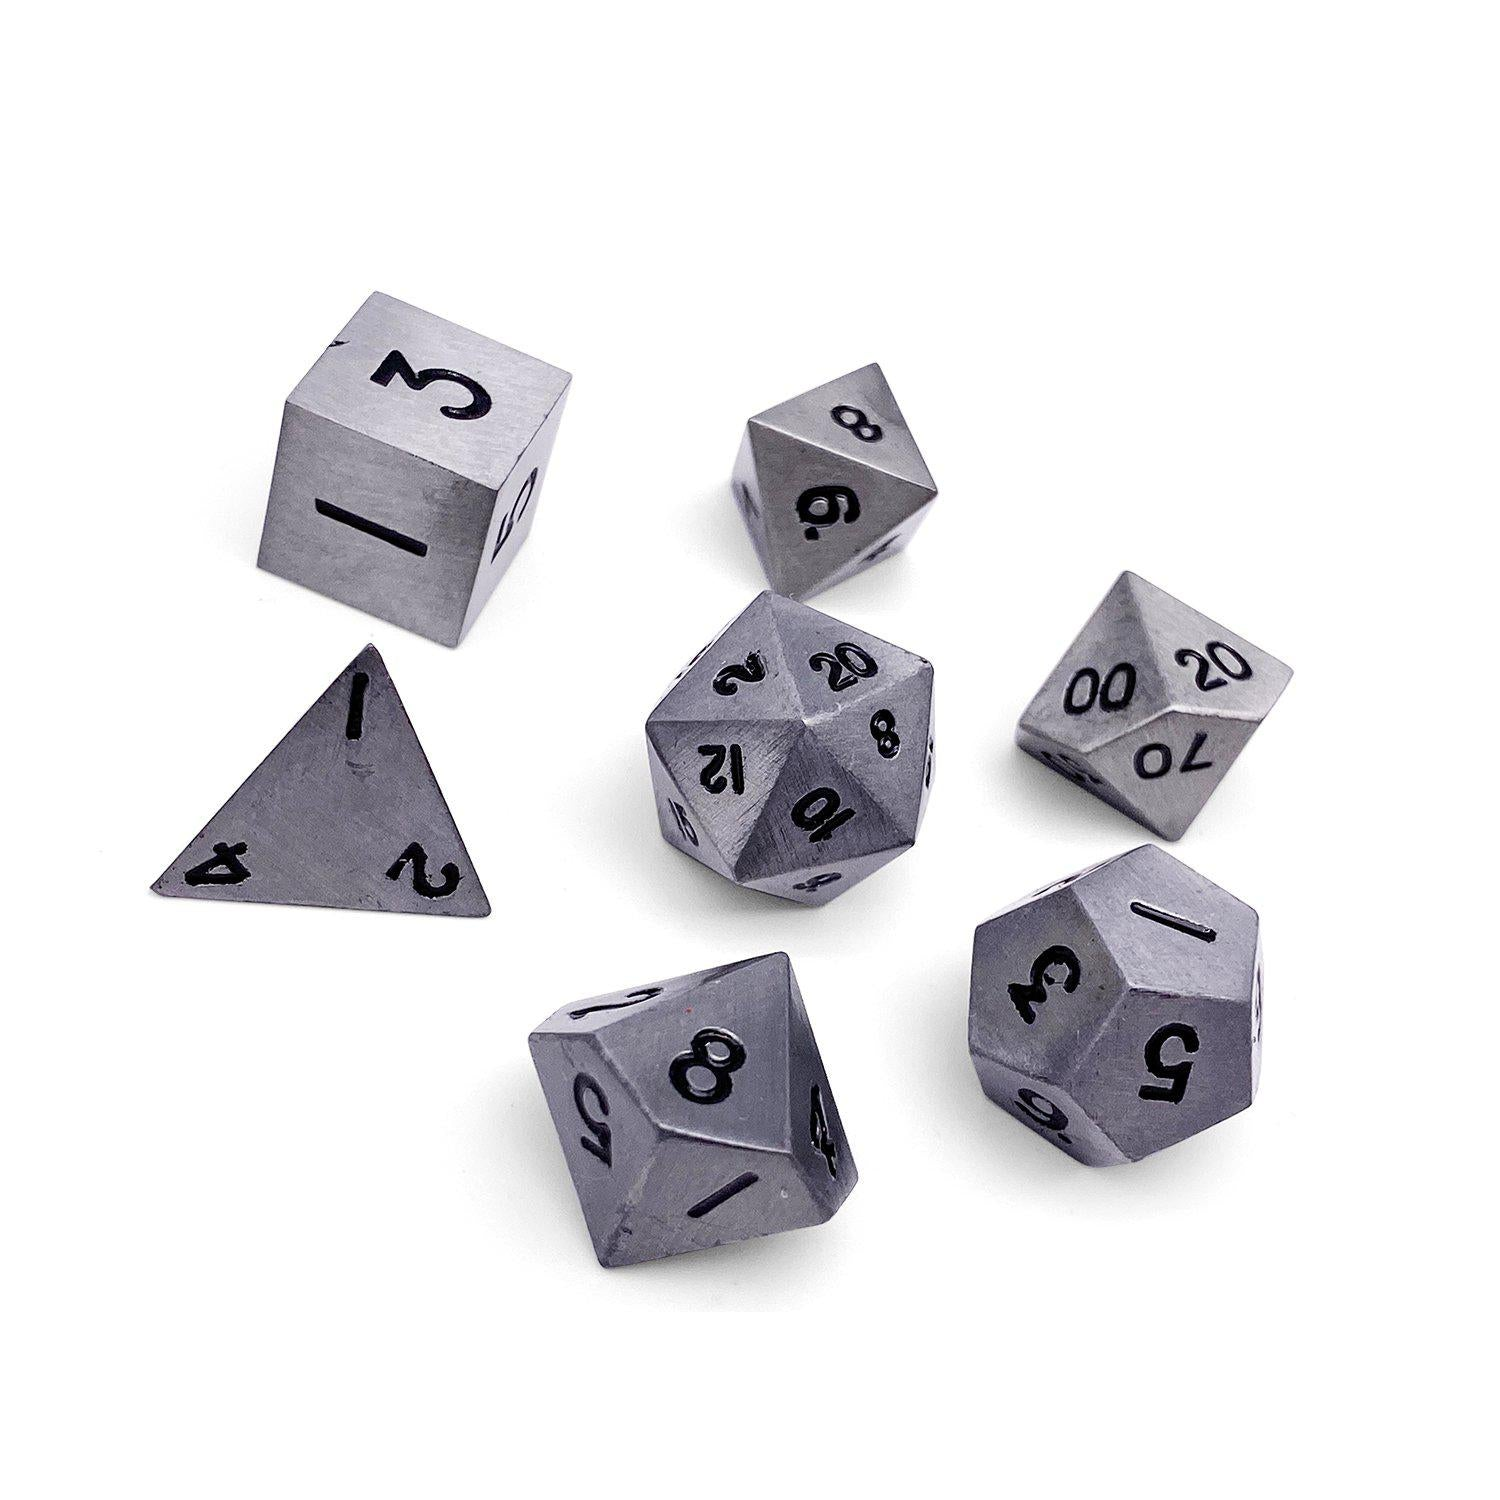 Aged Mithiral Metal Dice Set Norse Foundry The prose and poetic eddas, which form the foundation of what we know today concerning norse mythology, contain many names of jotnar (giants and giantesses). norse foundry